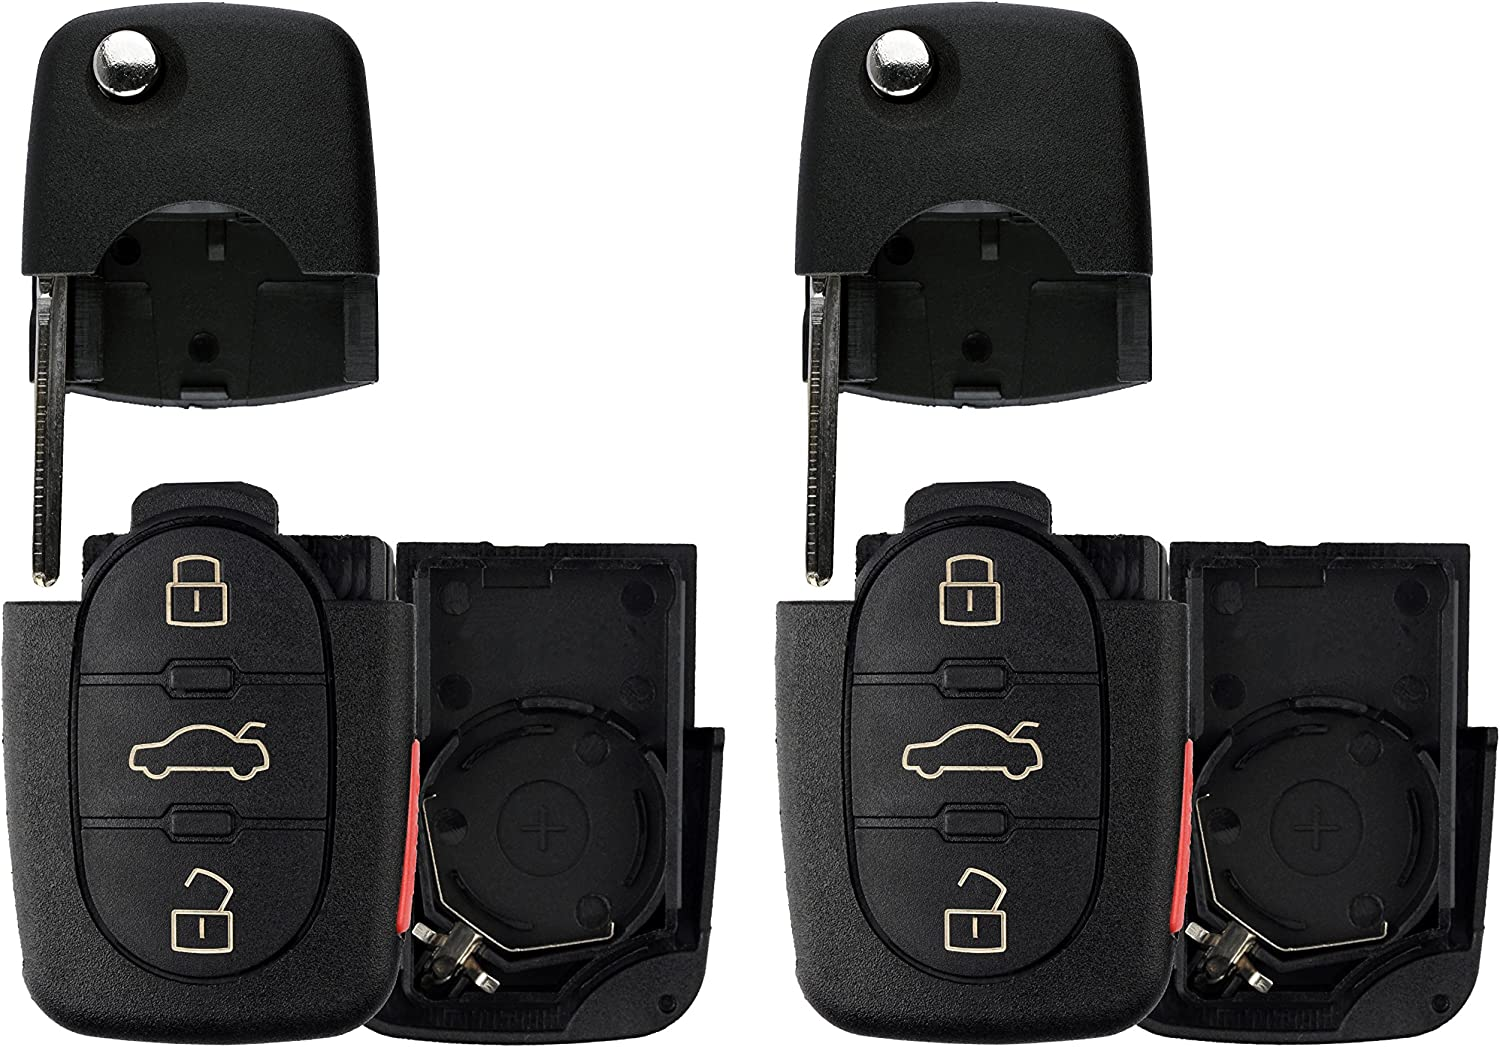 KeylessOption Keyless Entry Remote Key Fob Shell Case Button Pad Outter Cover For VW Audi